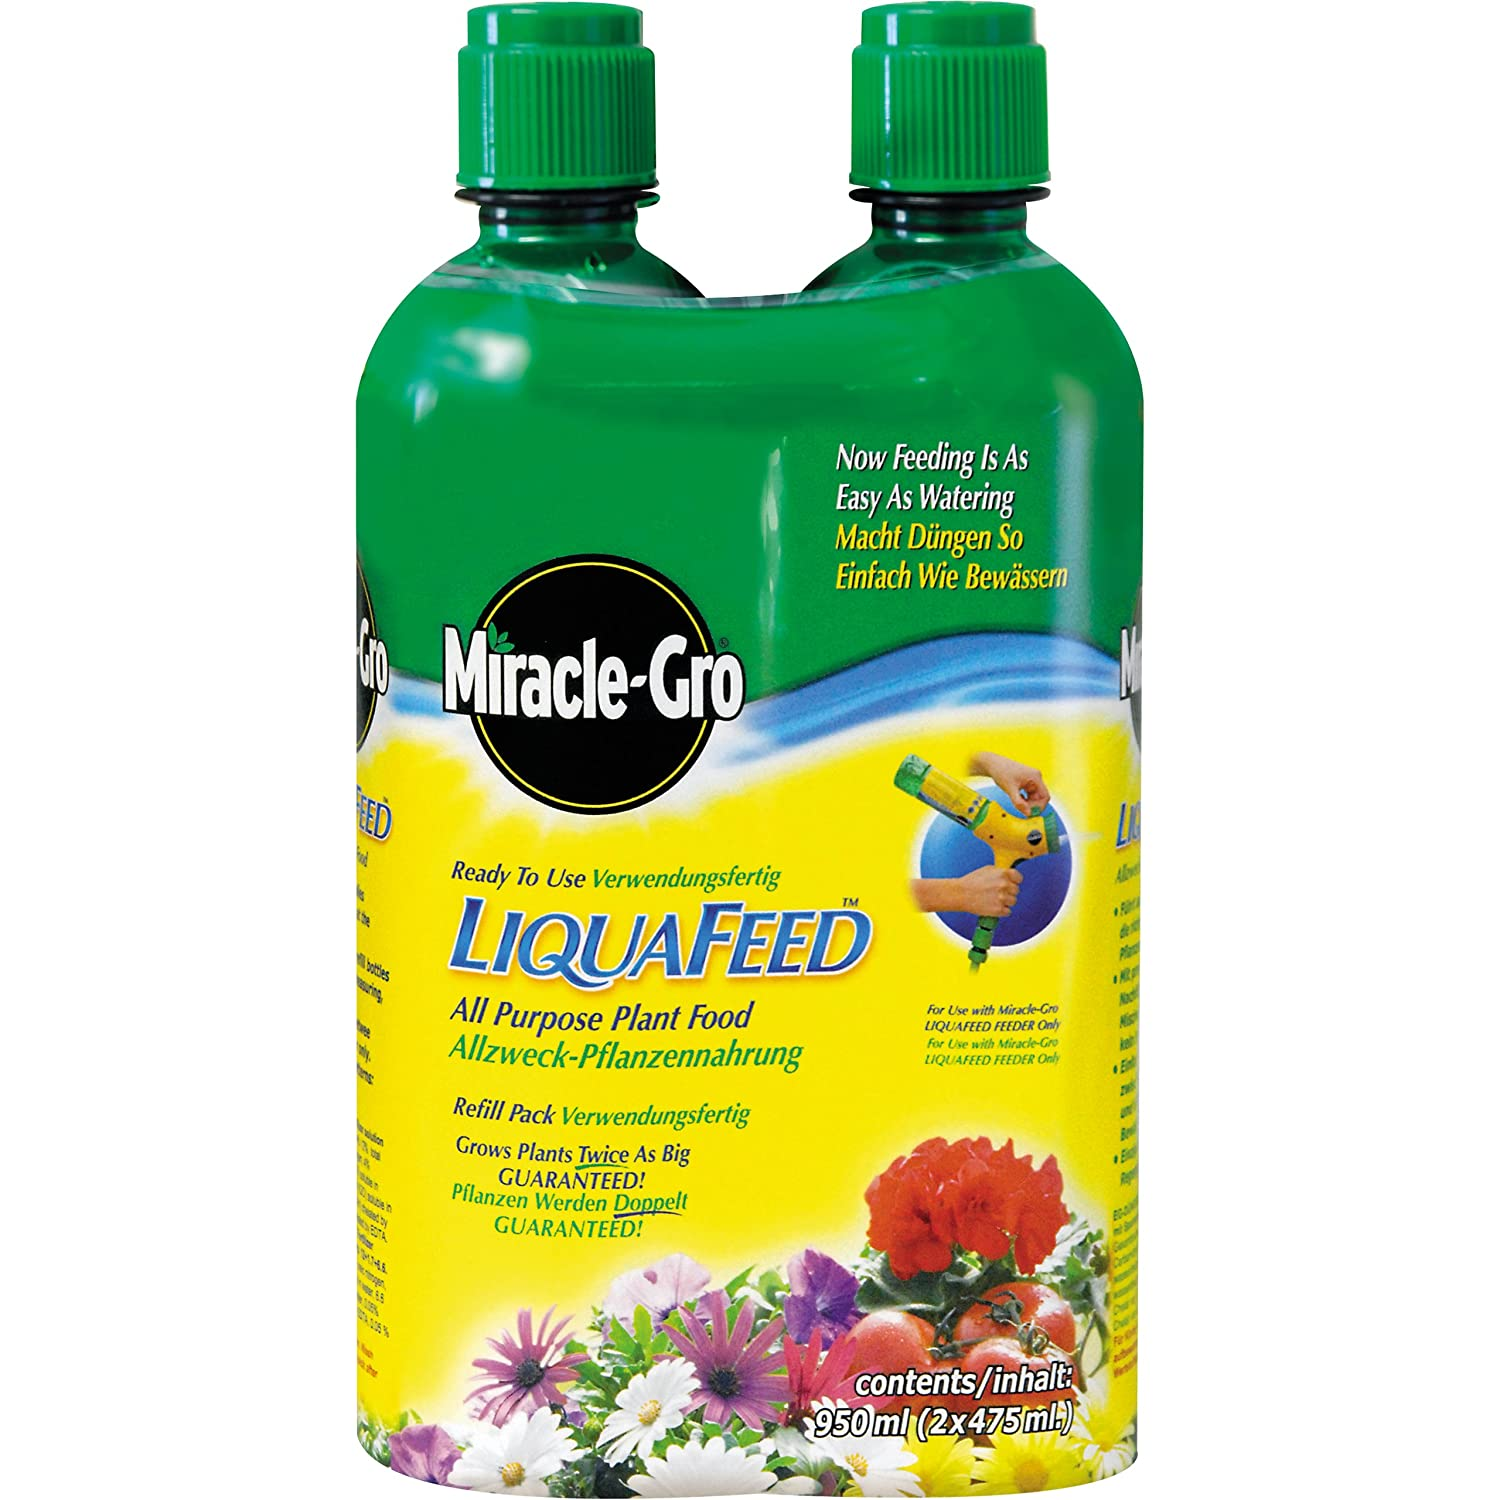 Miracle-Gro LiquaFeed All Purpose Plant Food Refills 2 Pack Evergreen Garden Care Ltd 016743 B000WNF0G4 Weed / Feed / Seed